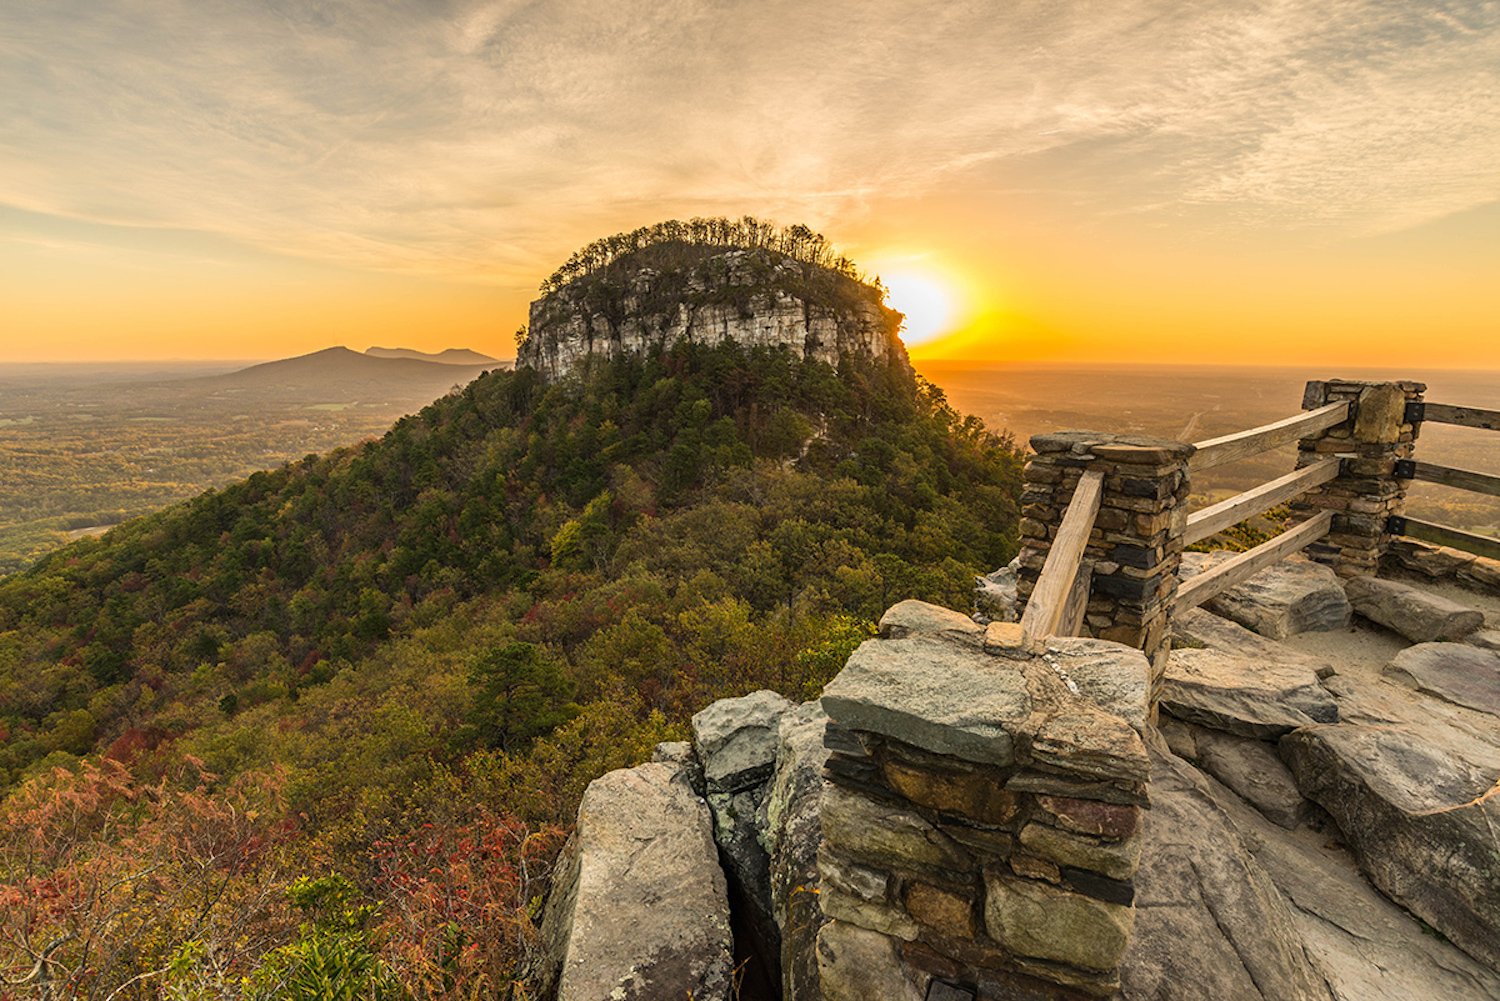 Things to do in Mount Airy NC means hikes, picnics, ranger-led events too.